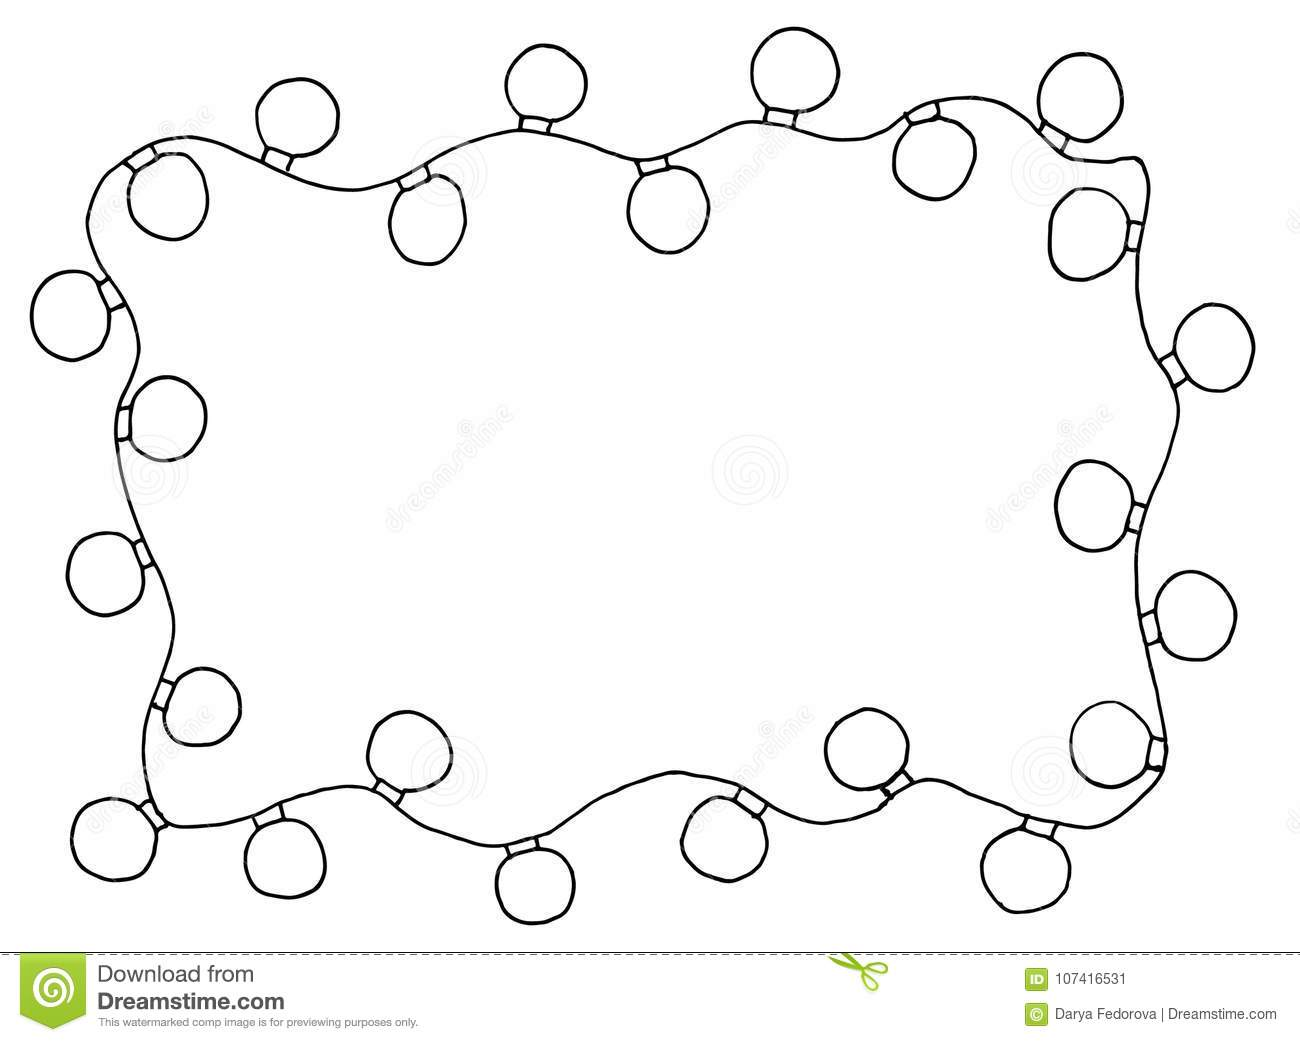 sketchy frames illustration hand drawn festive christmas lights with place for your text in the center